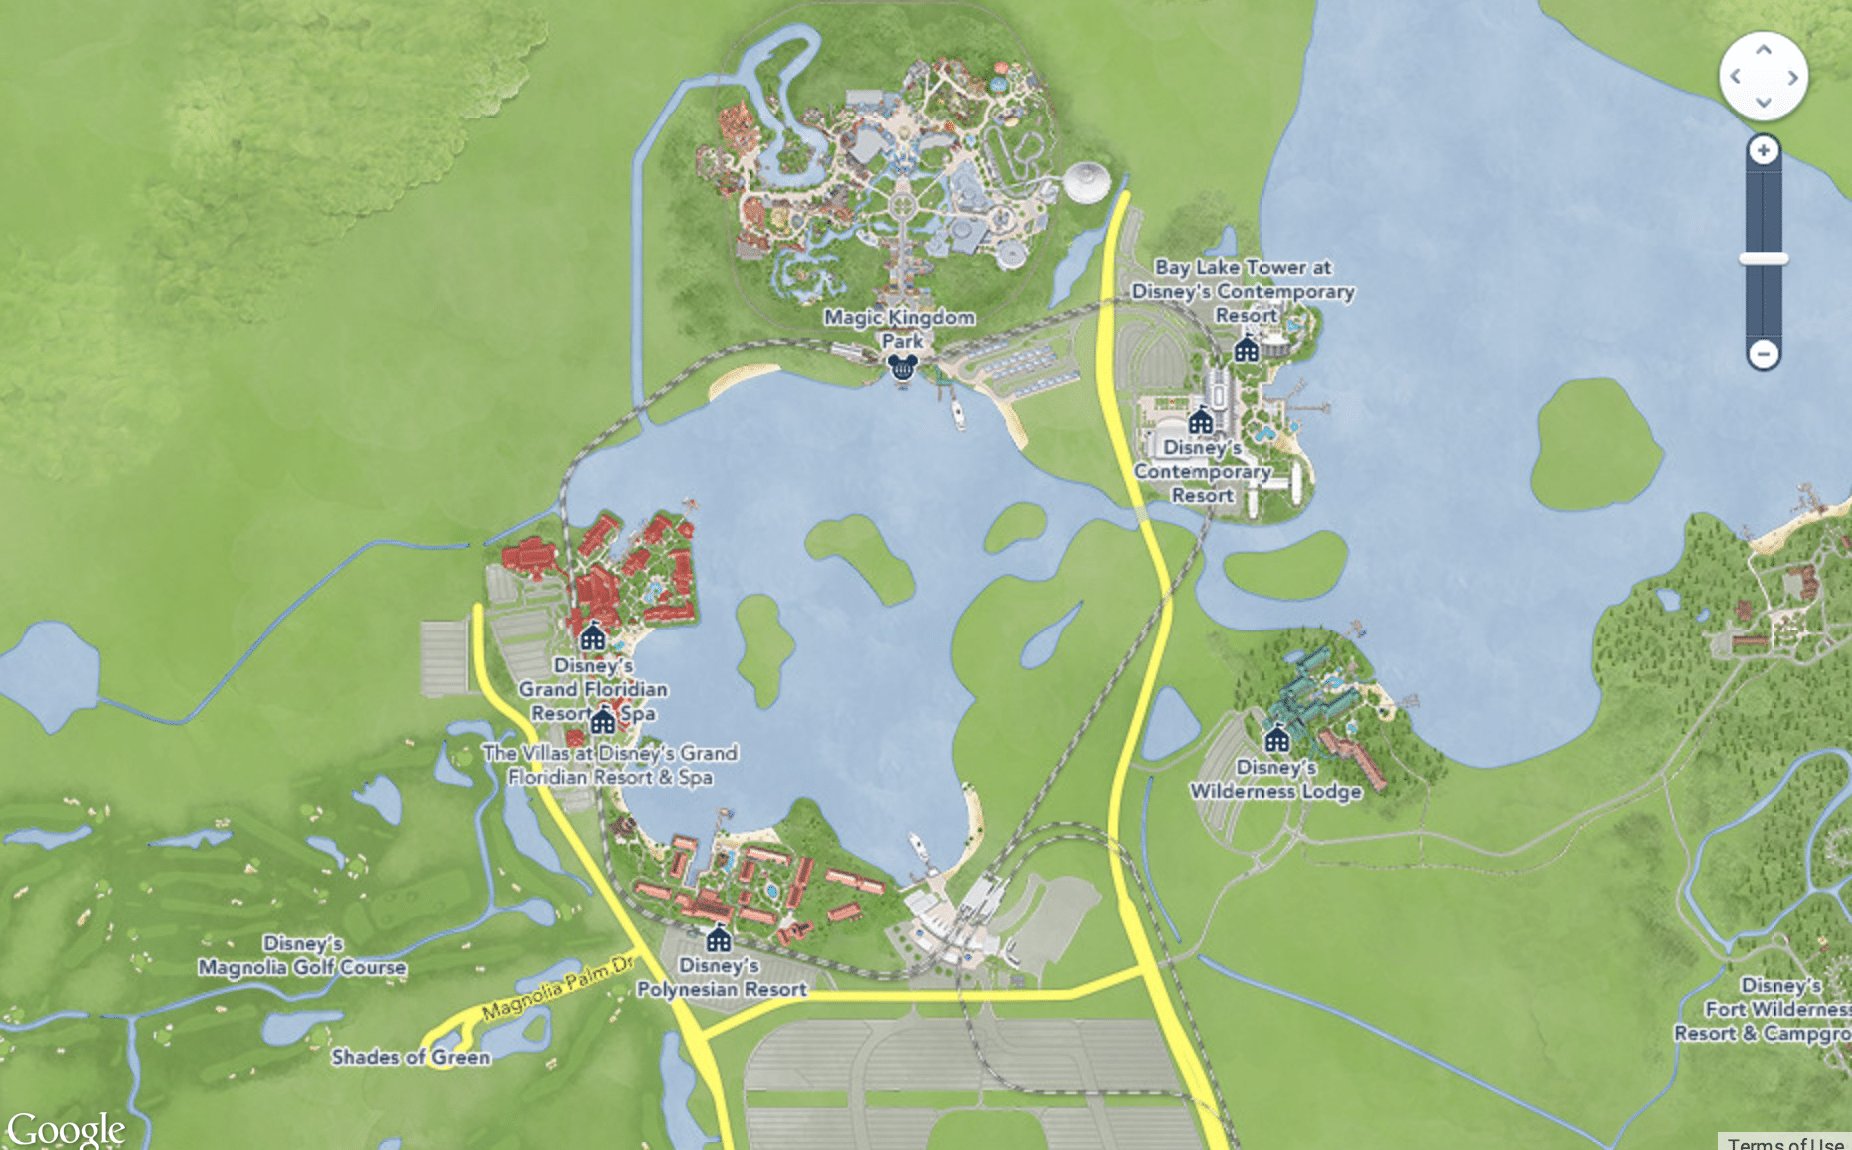 monorailloopmap - How to tour Disney World resorts (even if you're not staying there)